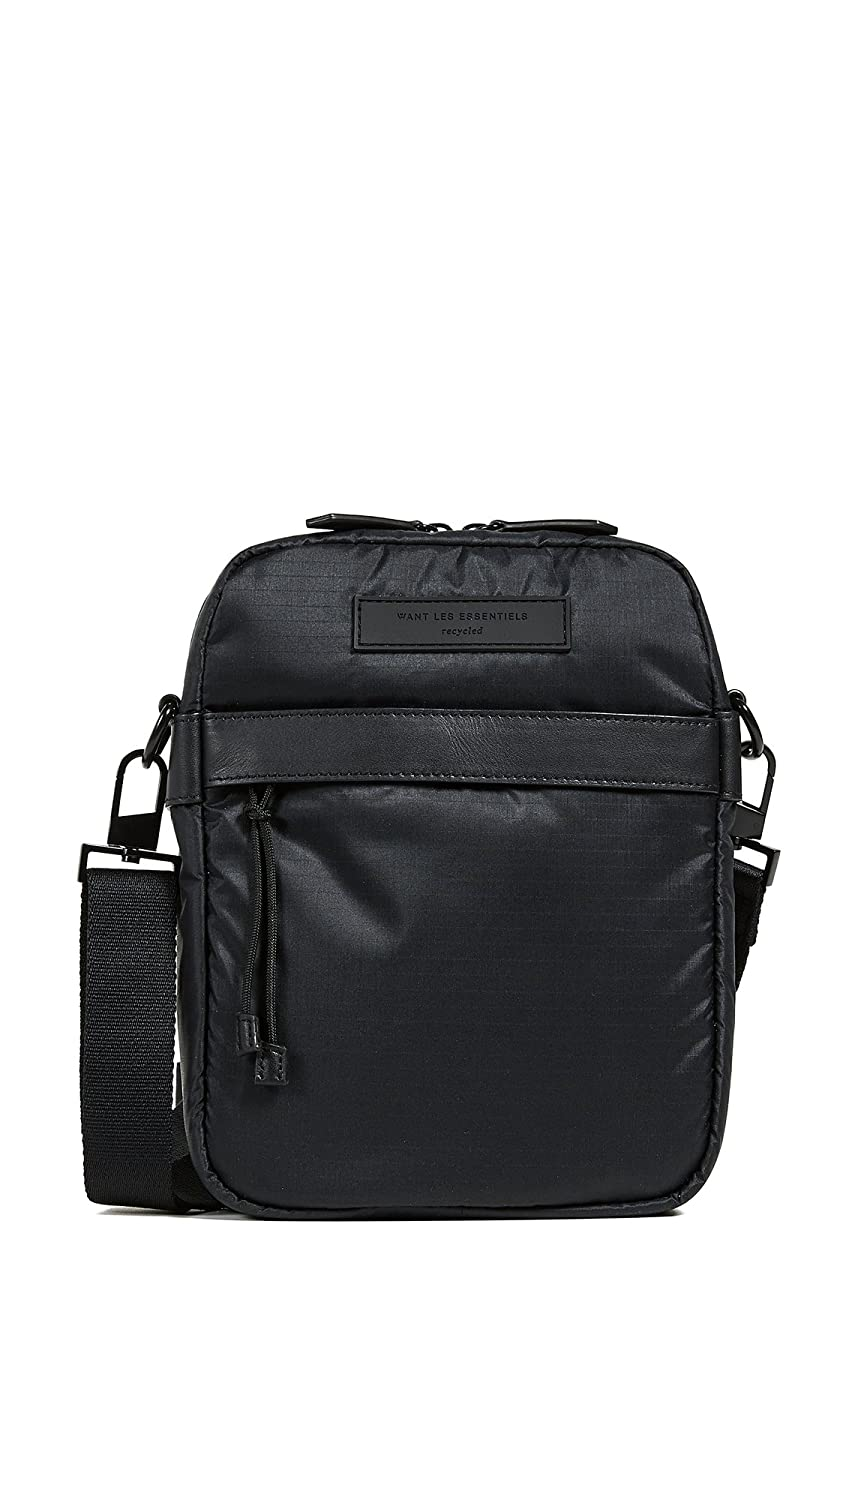 WANT Les Essentiels Mens Bryce Cross Body Messenger Bag Black One Size